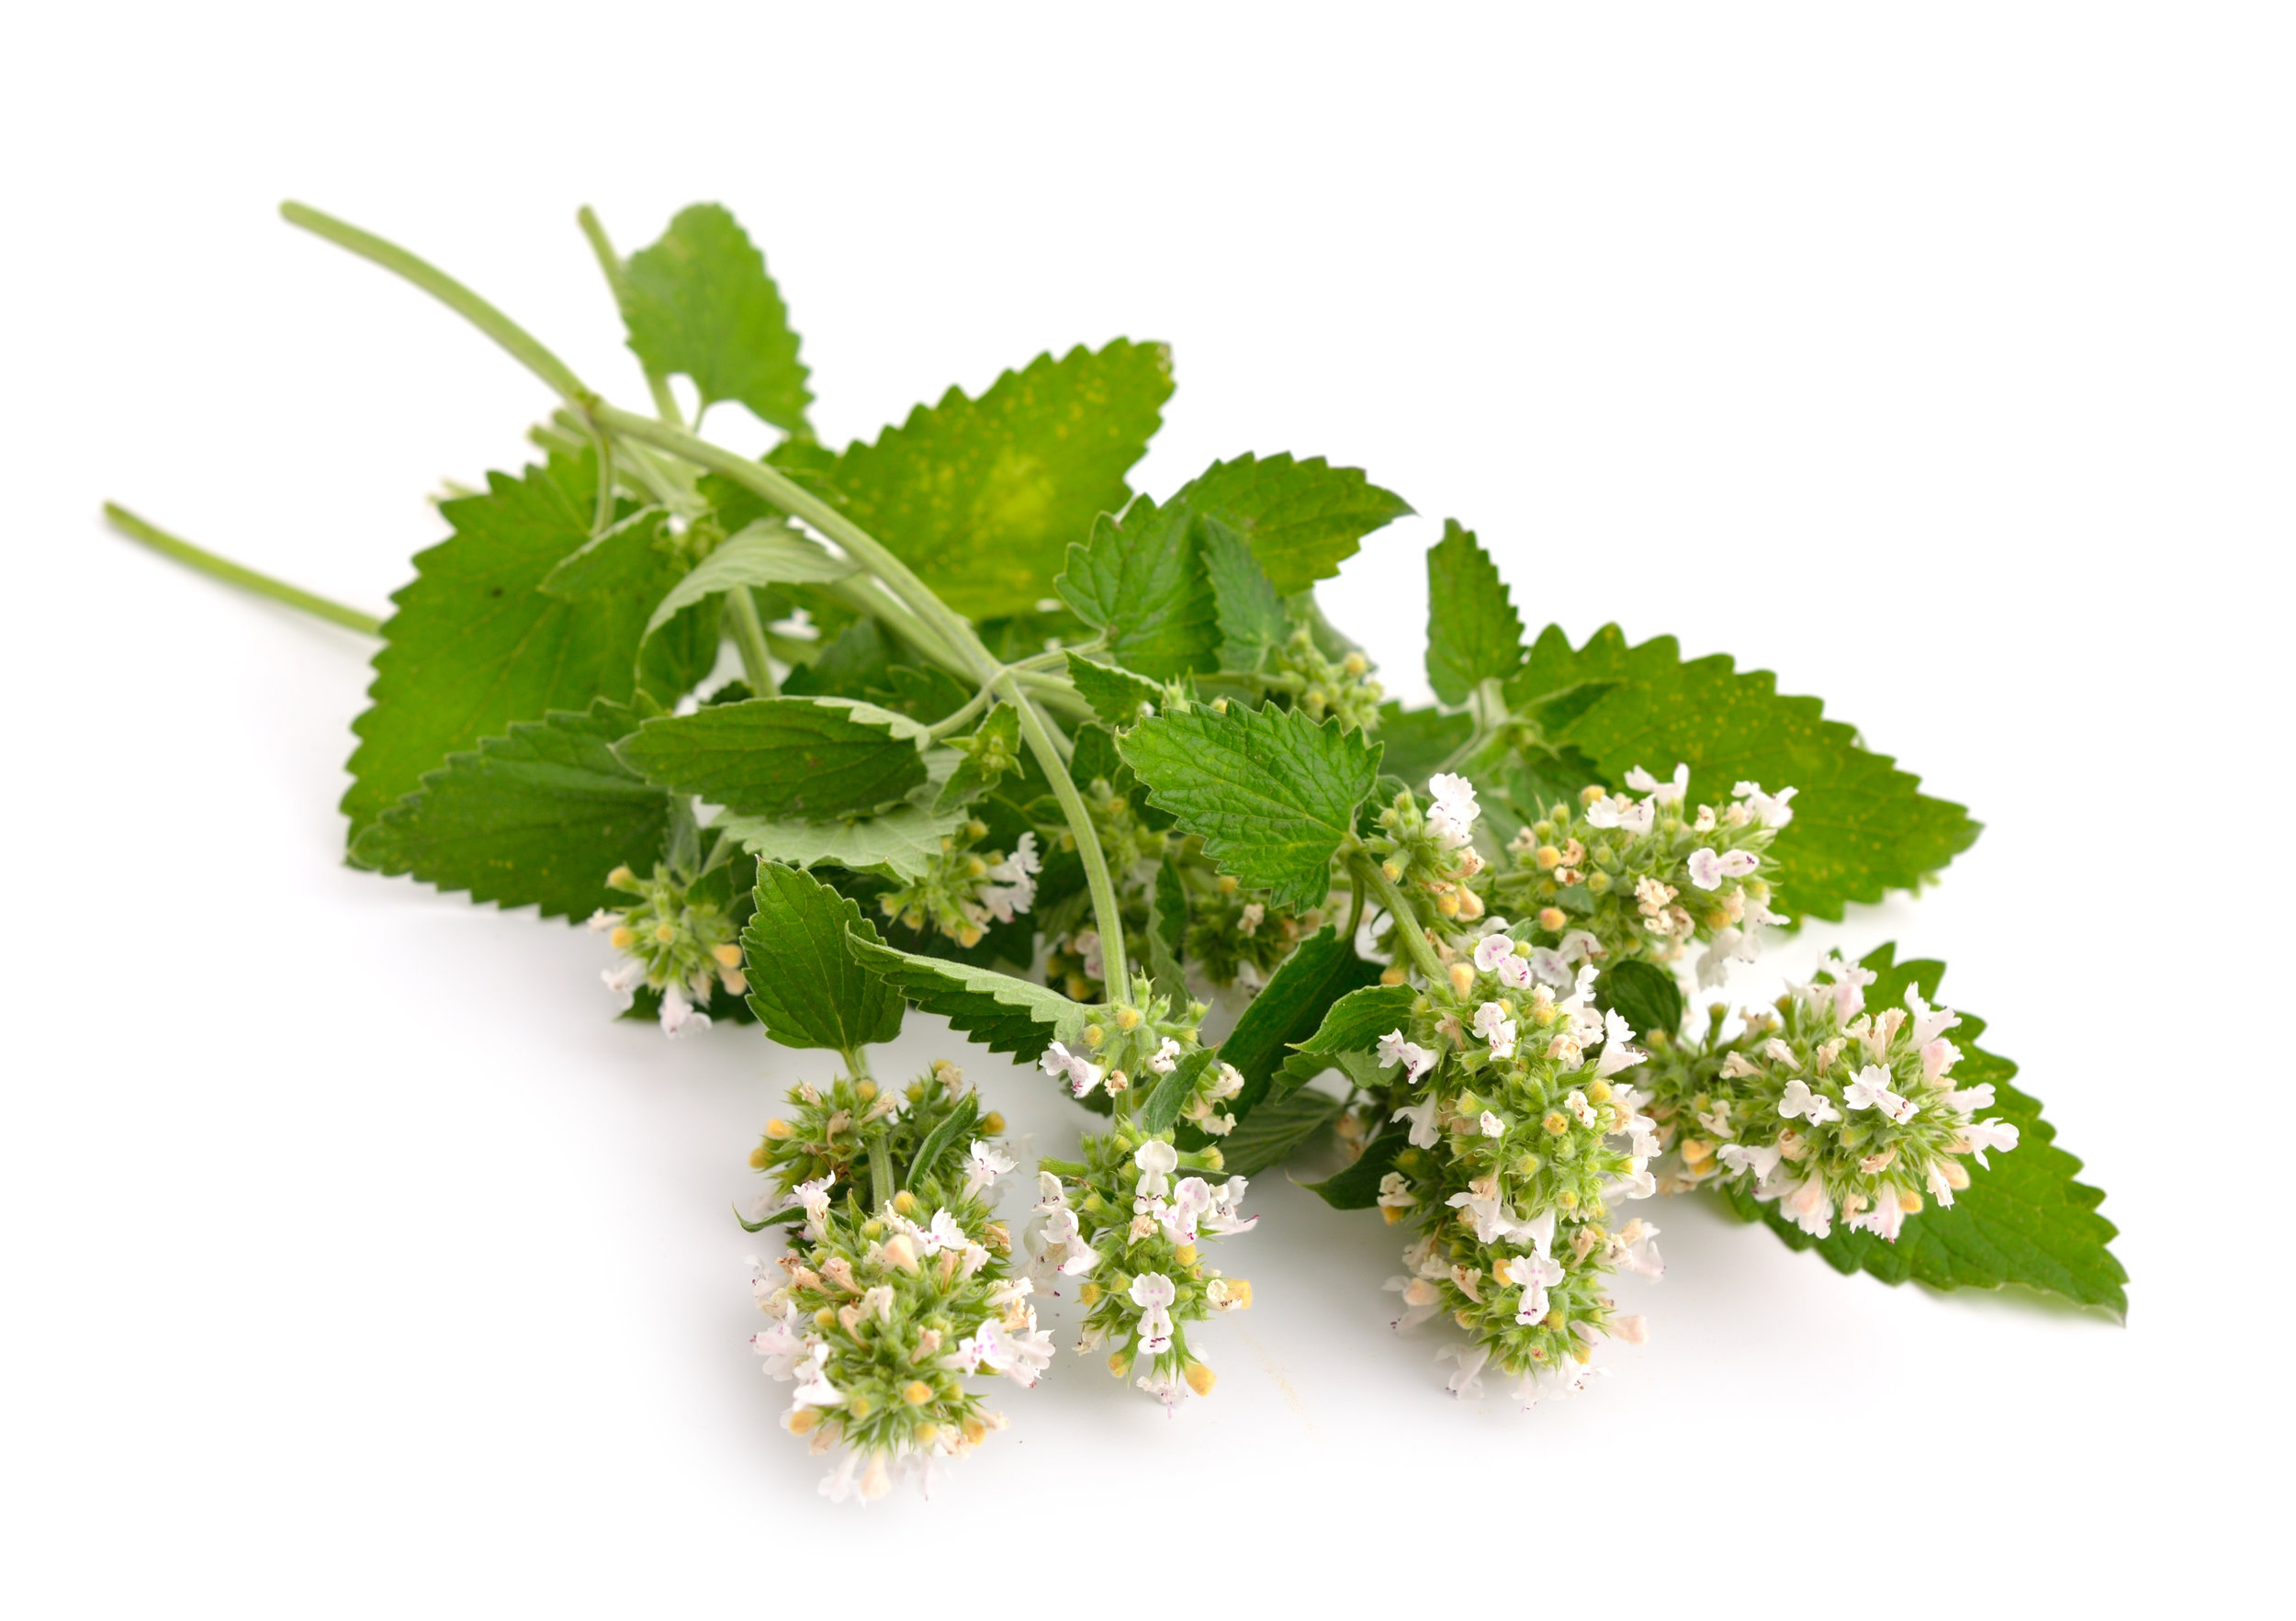 8. Catnip - Did you know the essential oil in catnip (that gives it the strong odour) is about 10 times more effective in repelling mozzies than DEET? (the compound used in chemical sprays) - How's that for a bit of free advice?!